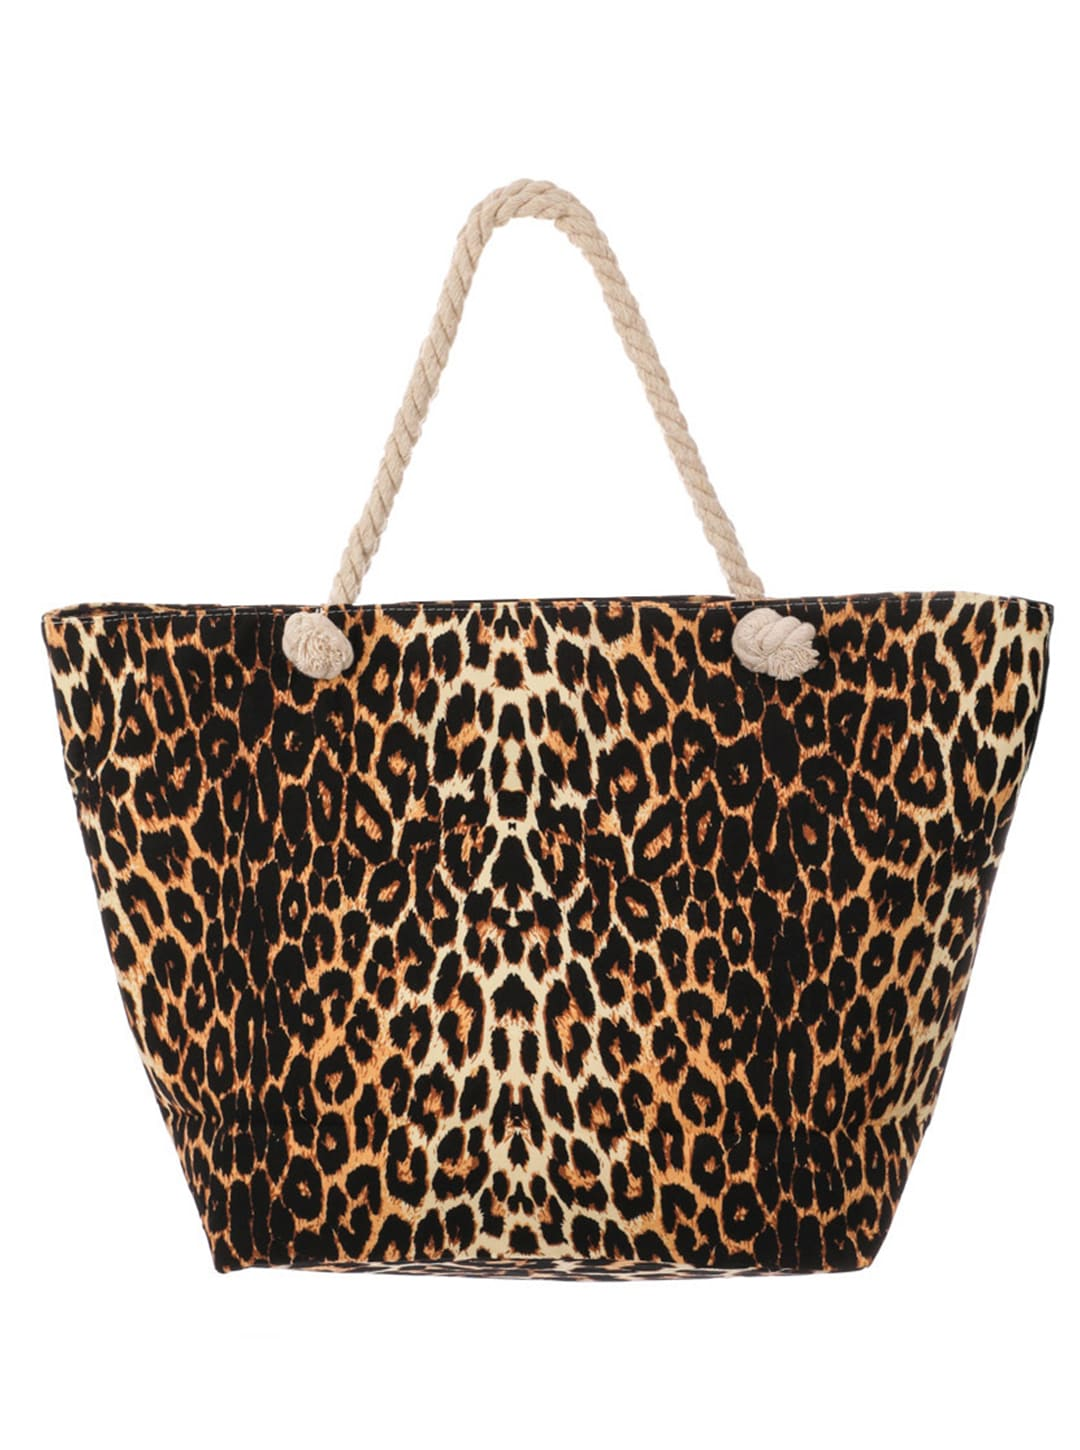 Leopard Print Canvas Summer Tote - Brown - Front